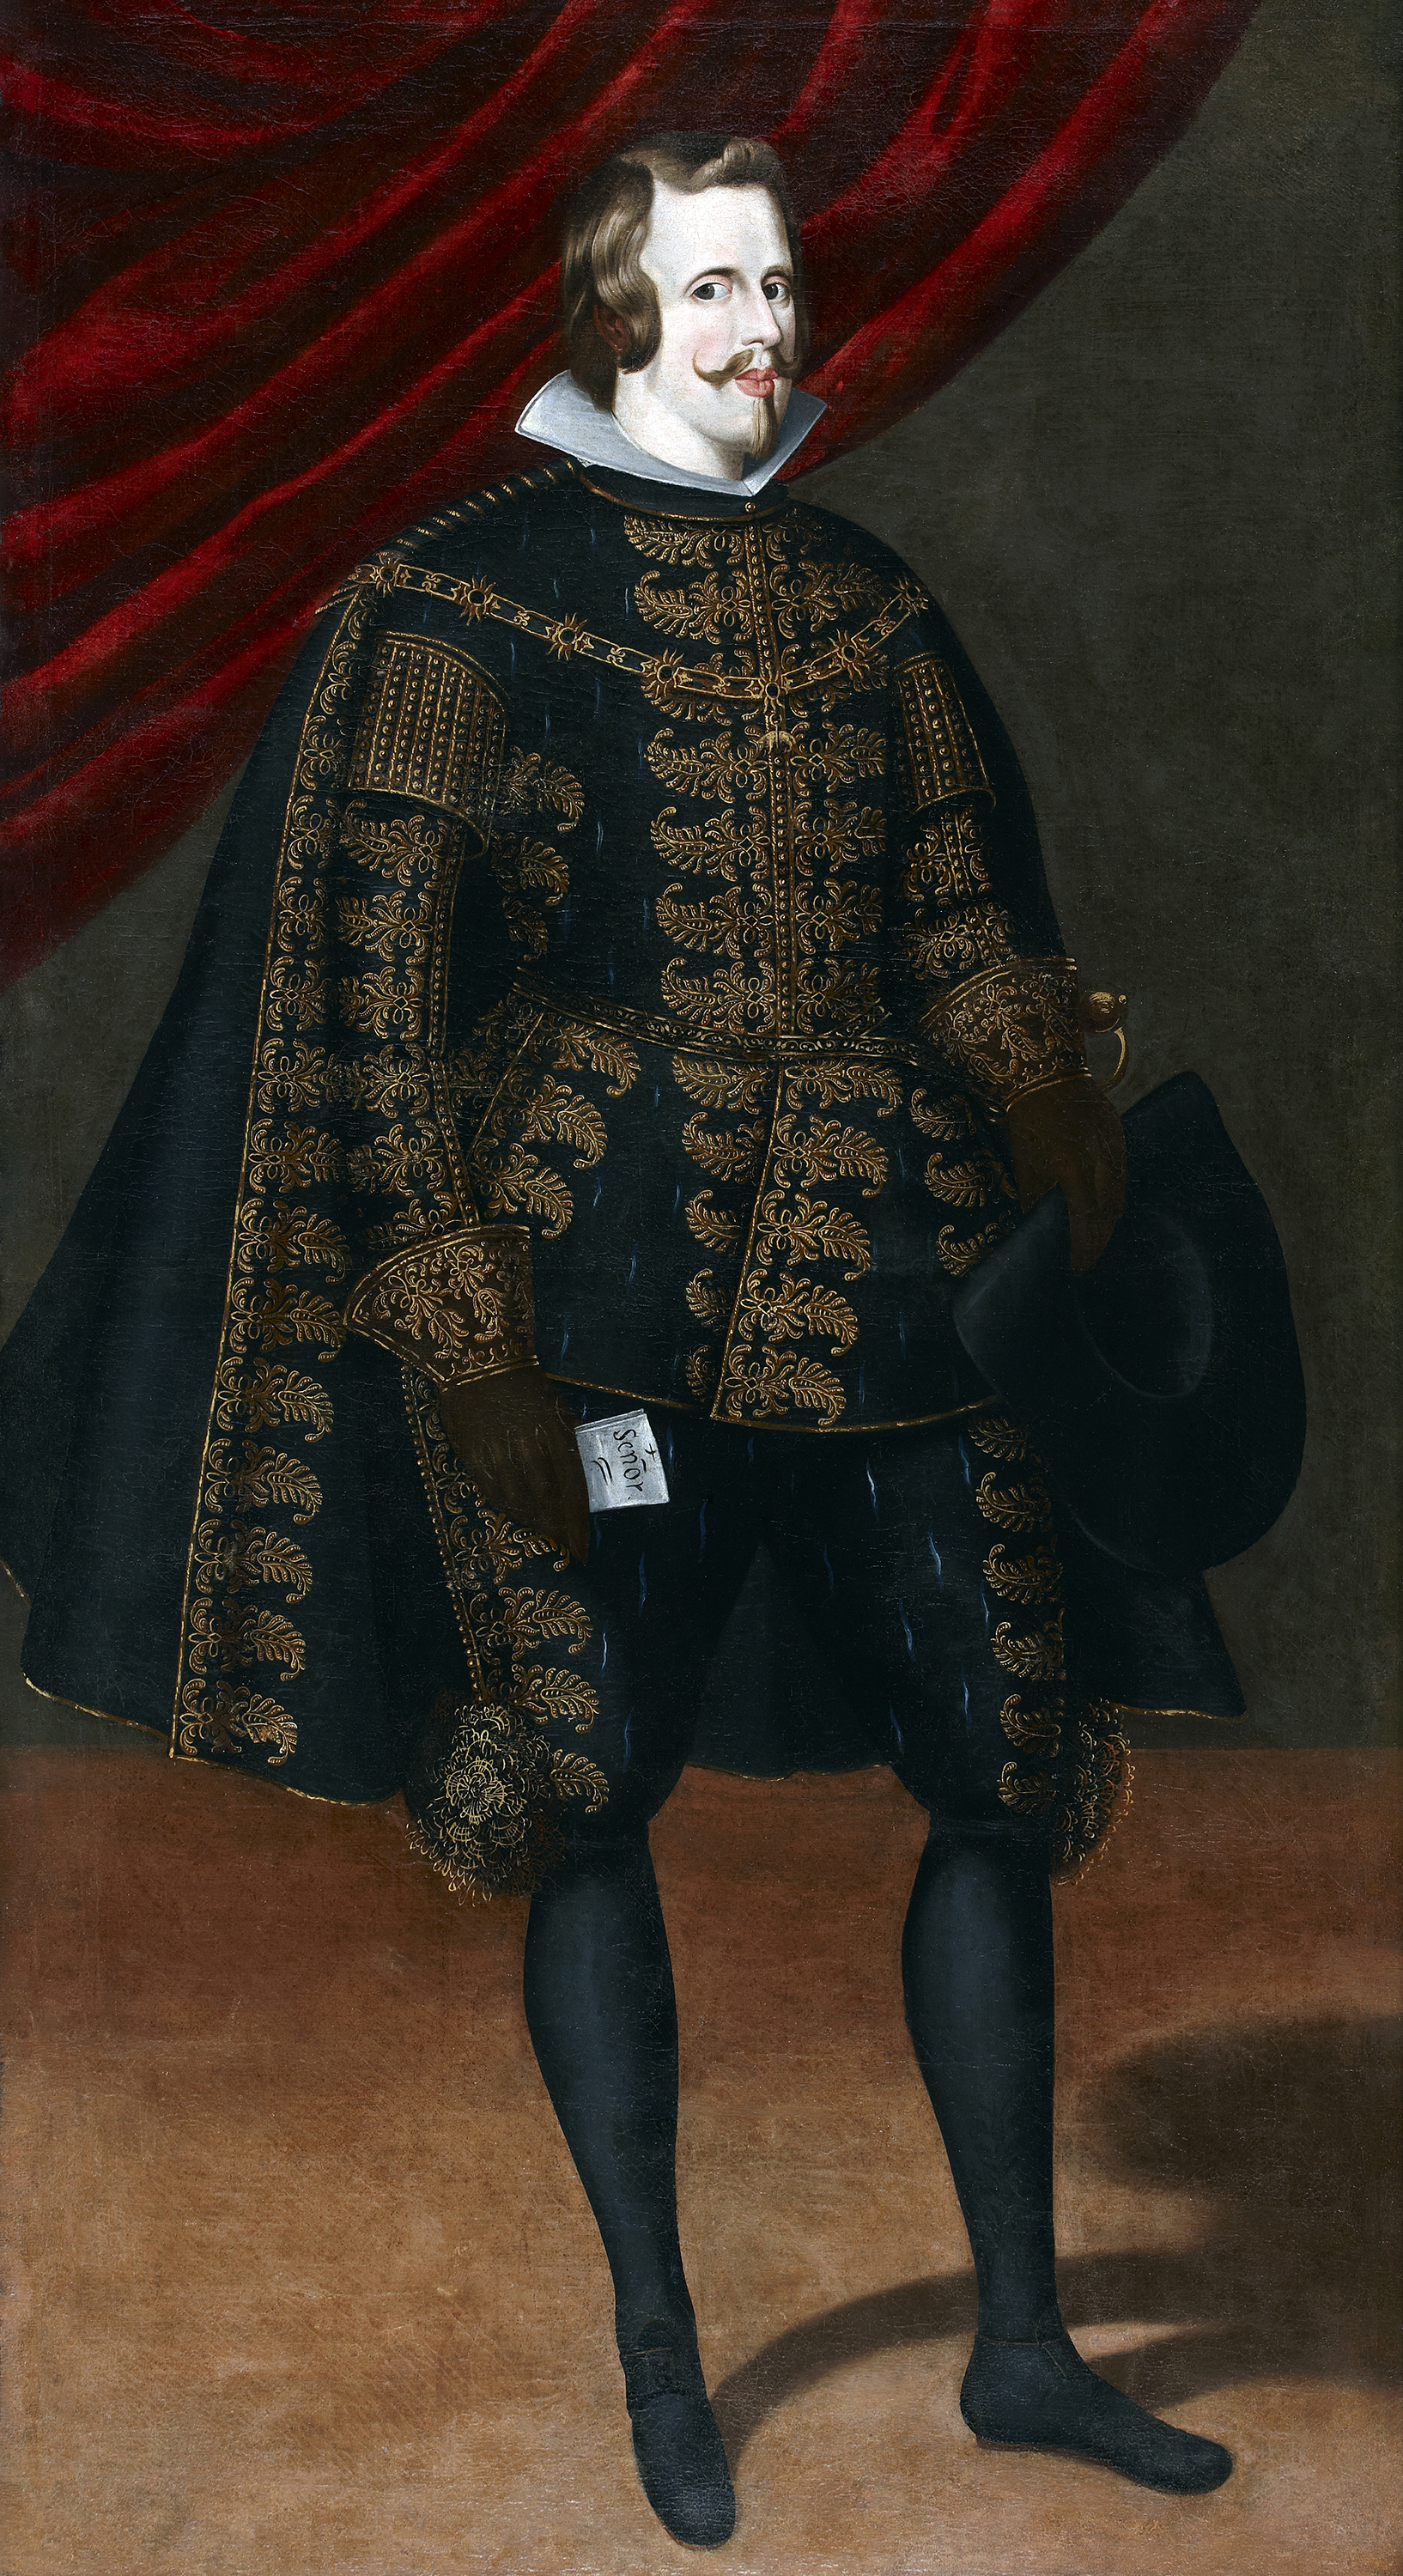 Portrait of Philip IV (1605-1665), King of Spain, Naples, Sicily and Sardinia (1621), King of Portugal (1621-1640), Duke of Milan, Lothier, Brabant, Limburg and Luxemburg; Count Palatine of Burgundy; Count of Flanders, Hainaut and Namur (1621) | Portraits of Kings